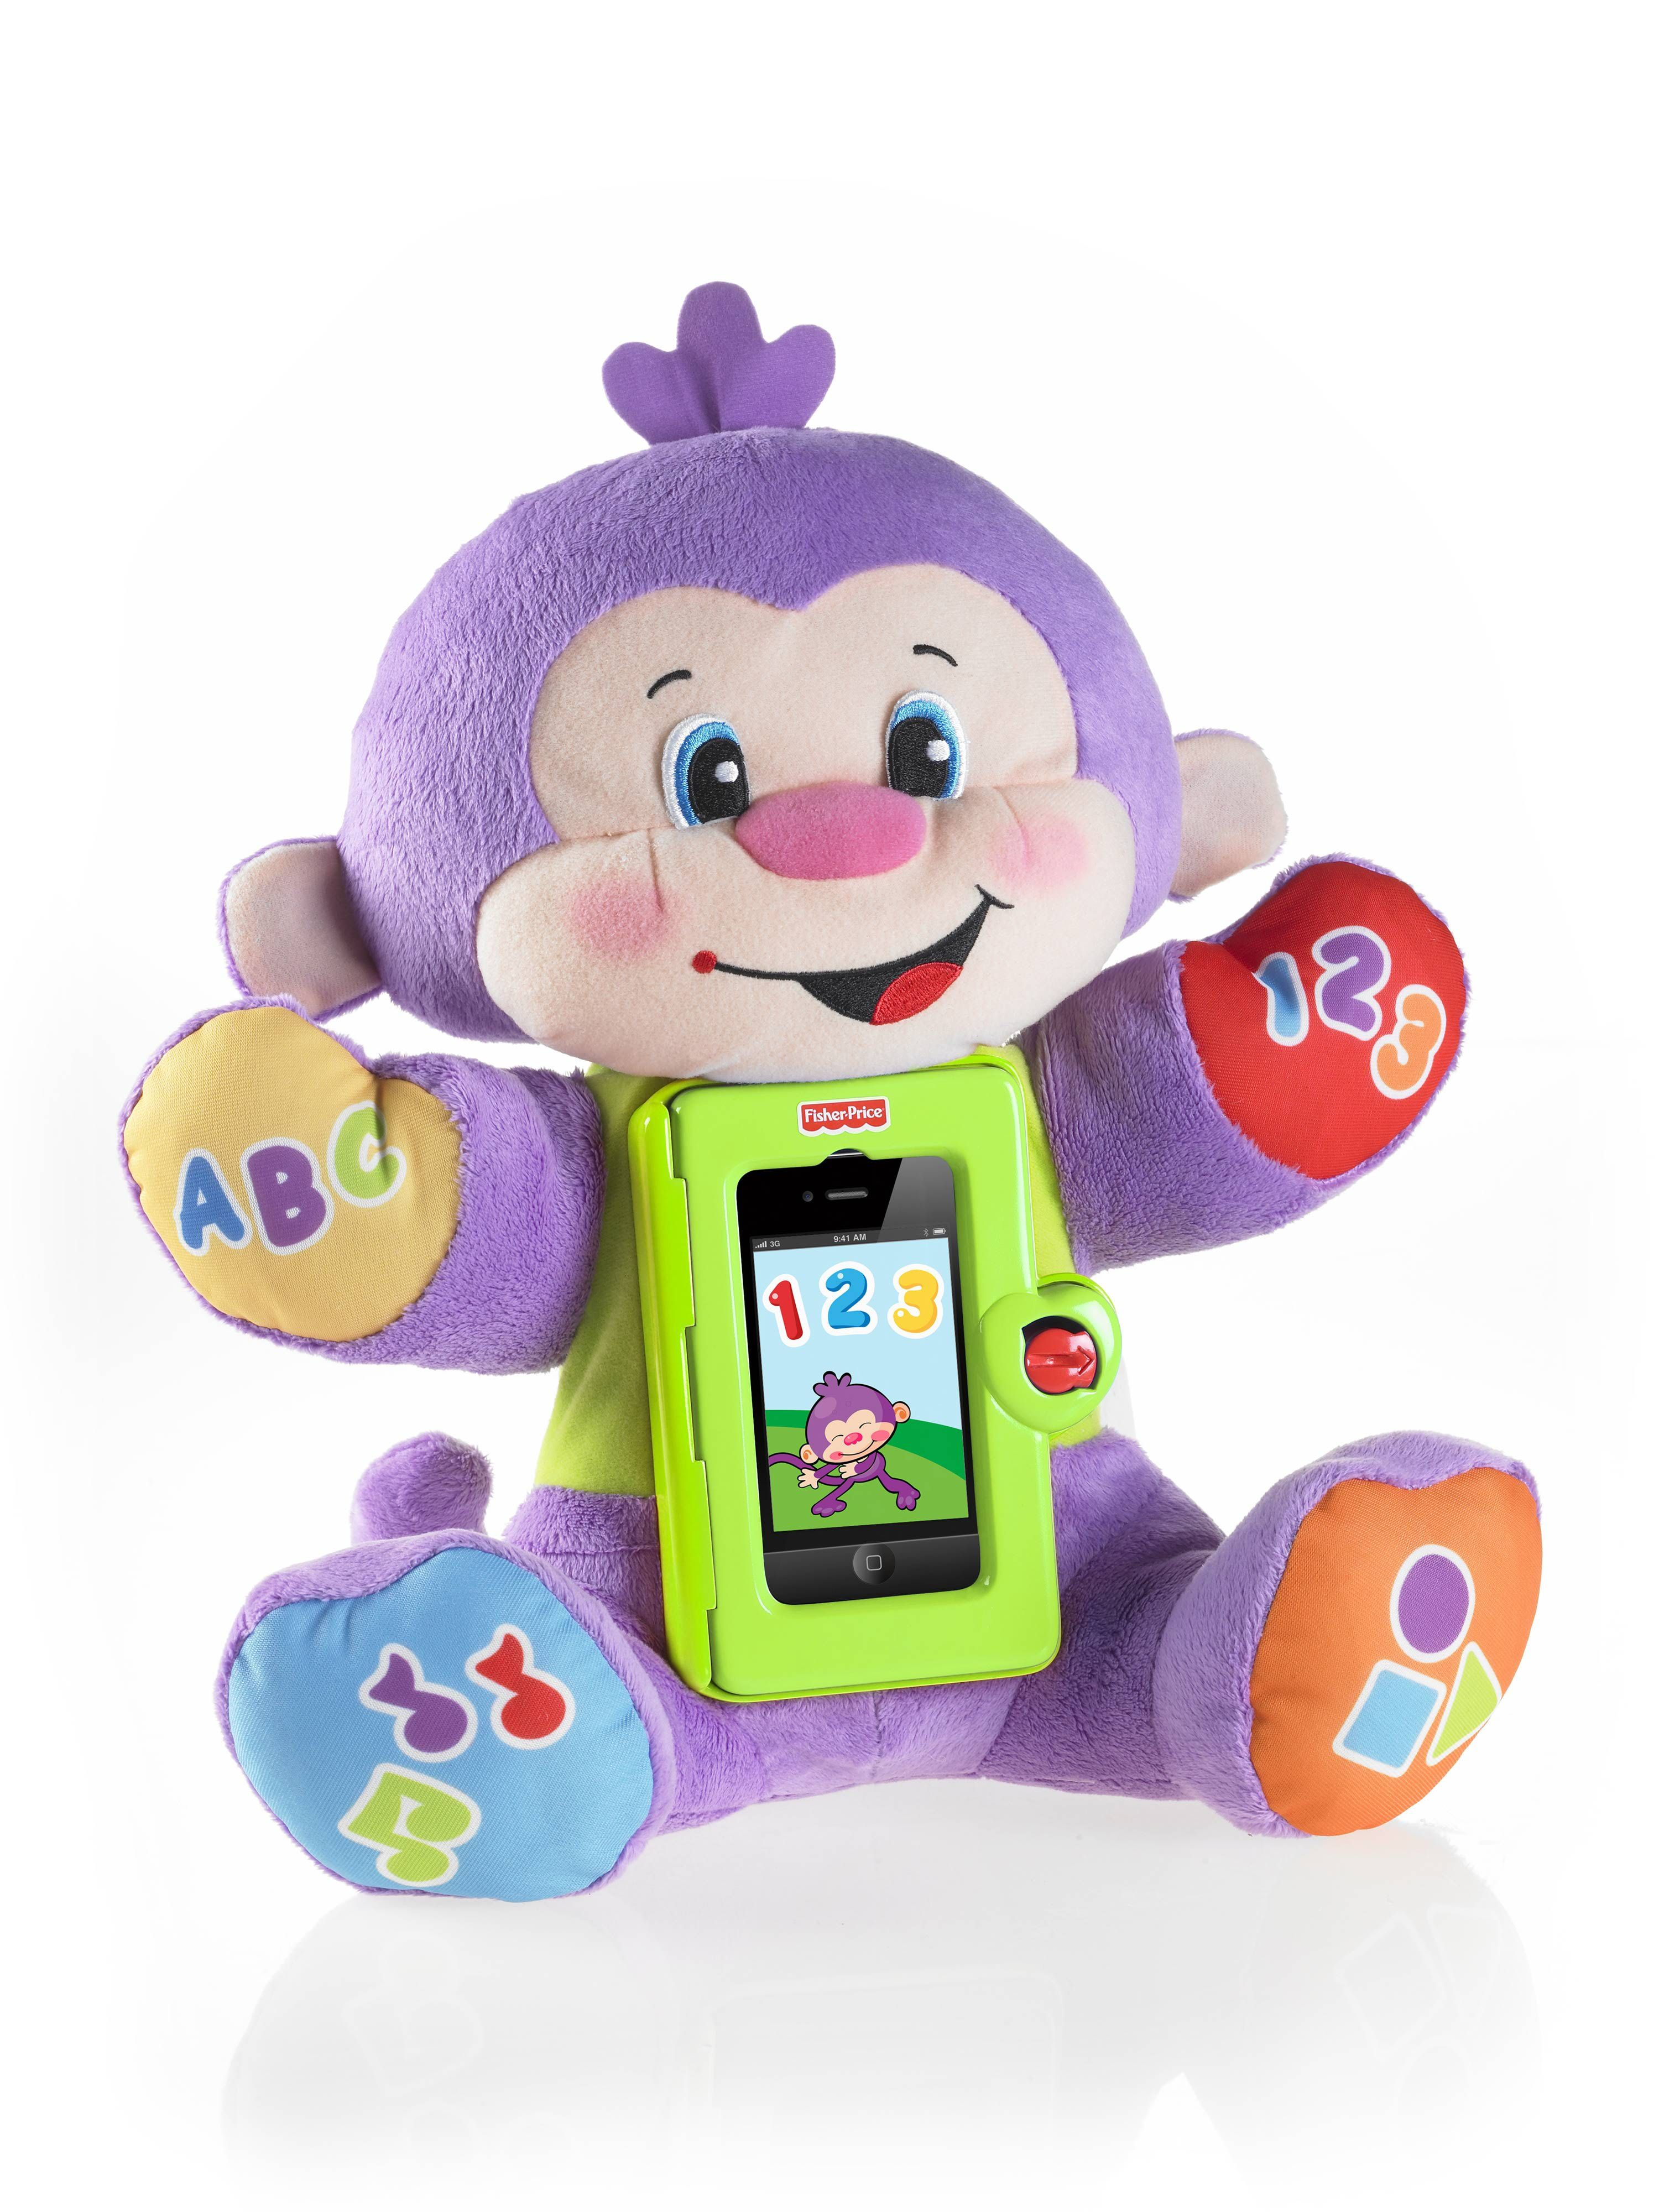 The 12 Best Baby Toys for 1-Year-Olds in 2020 | Baby toys ...